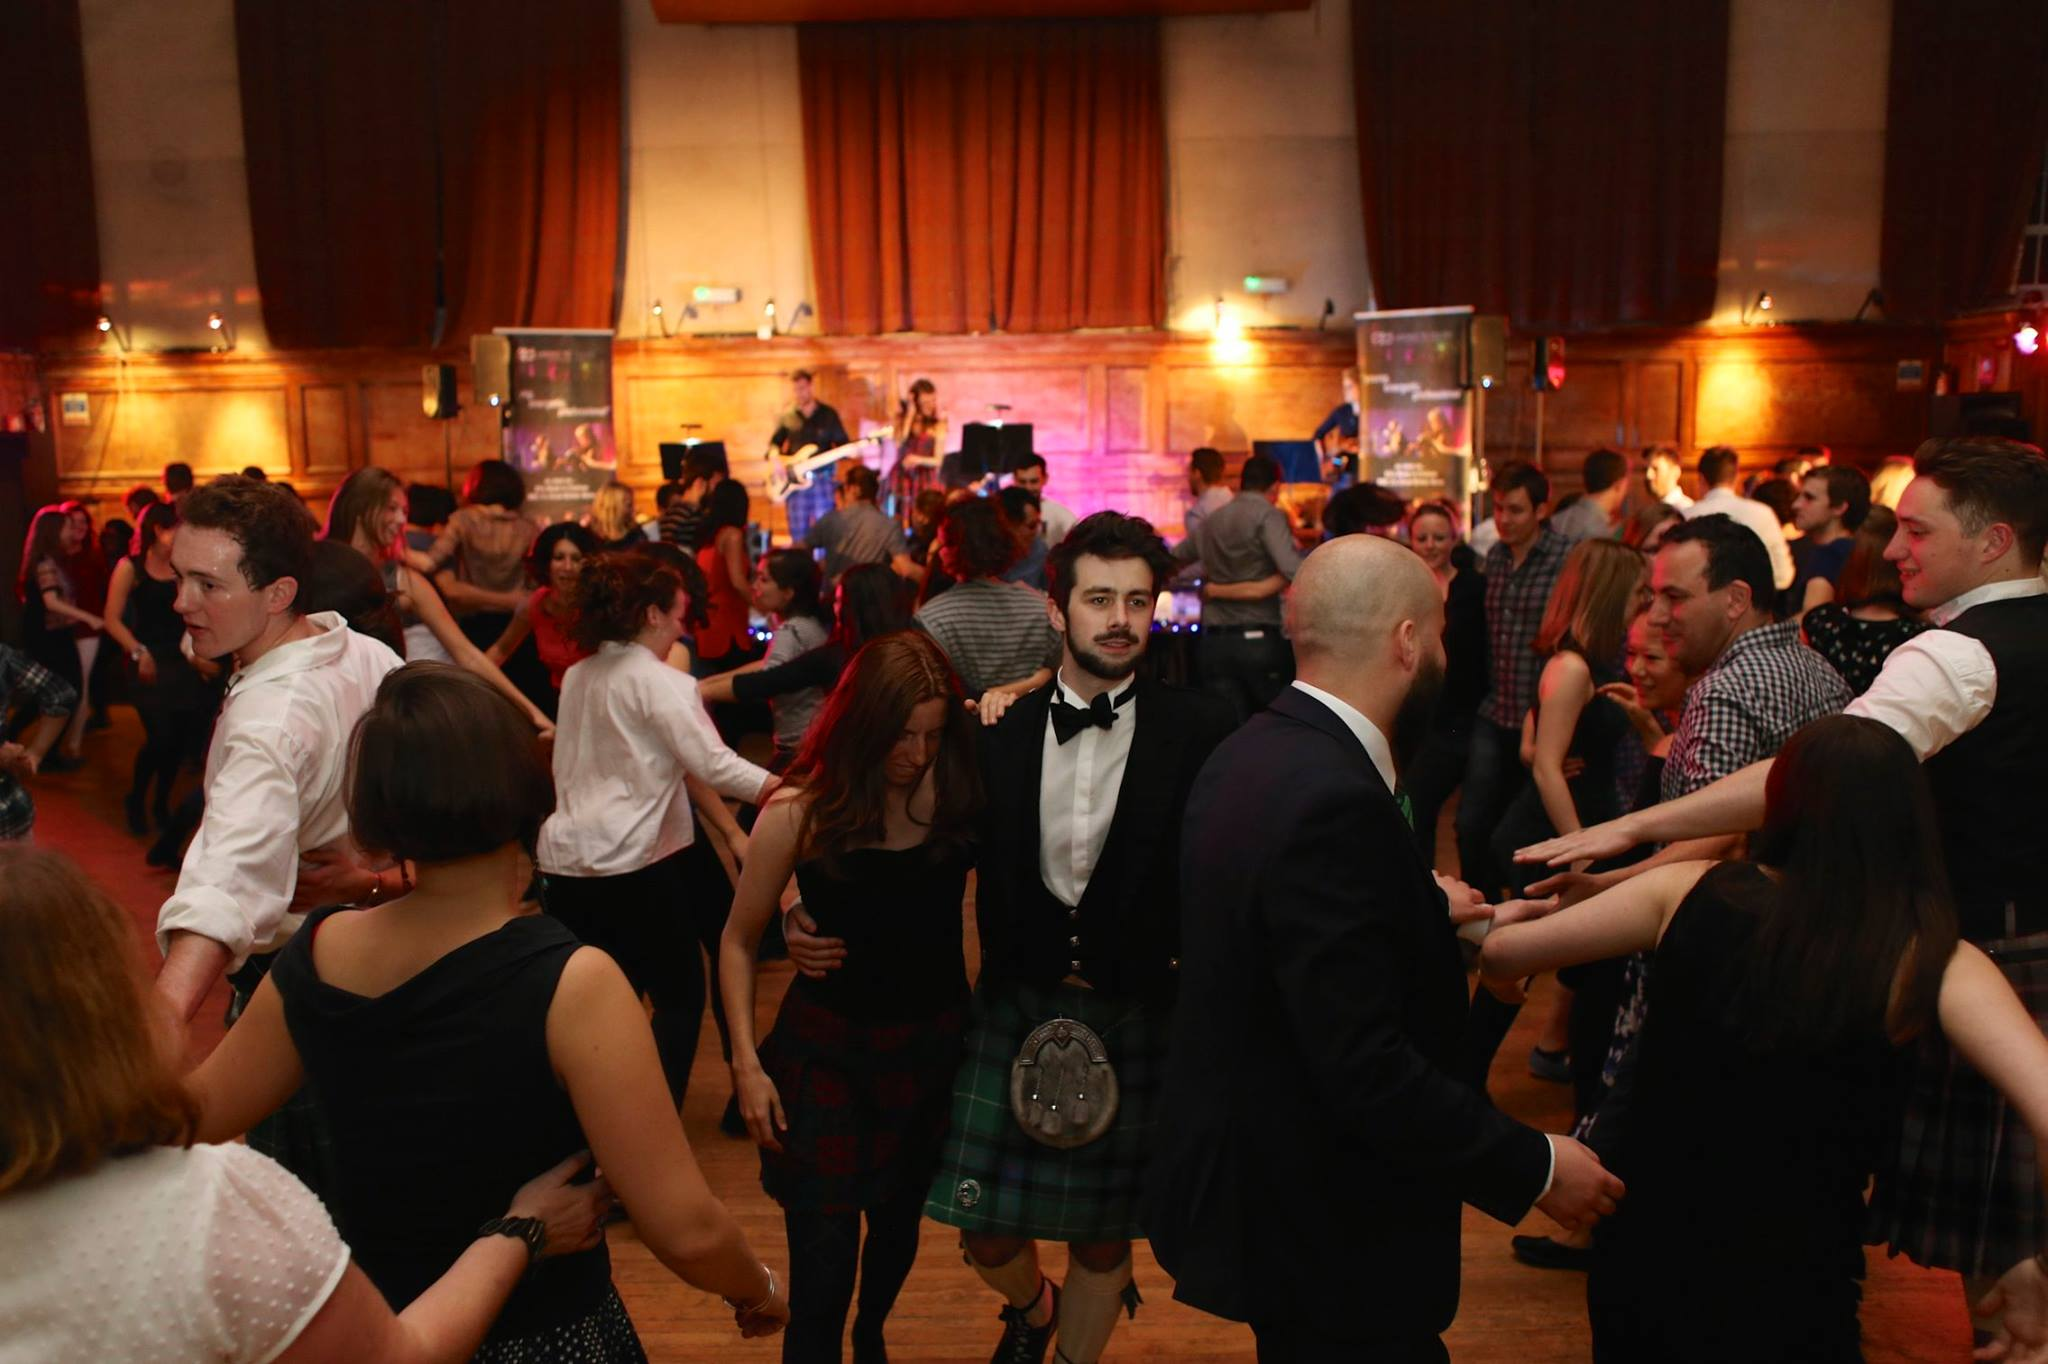 Contact Us Licence To Ceilidh